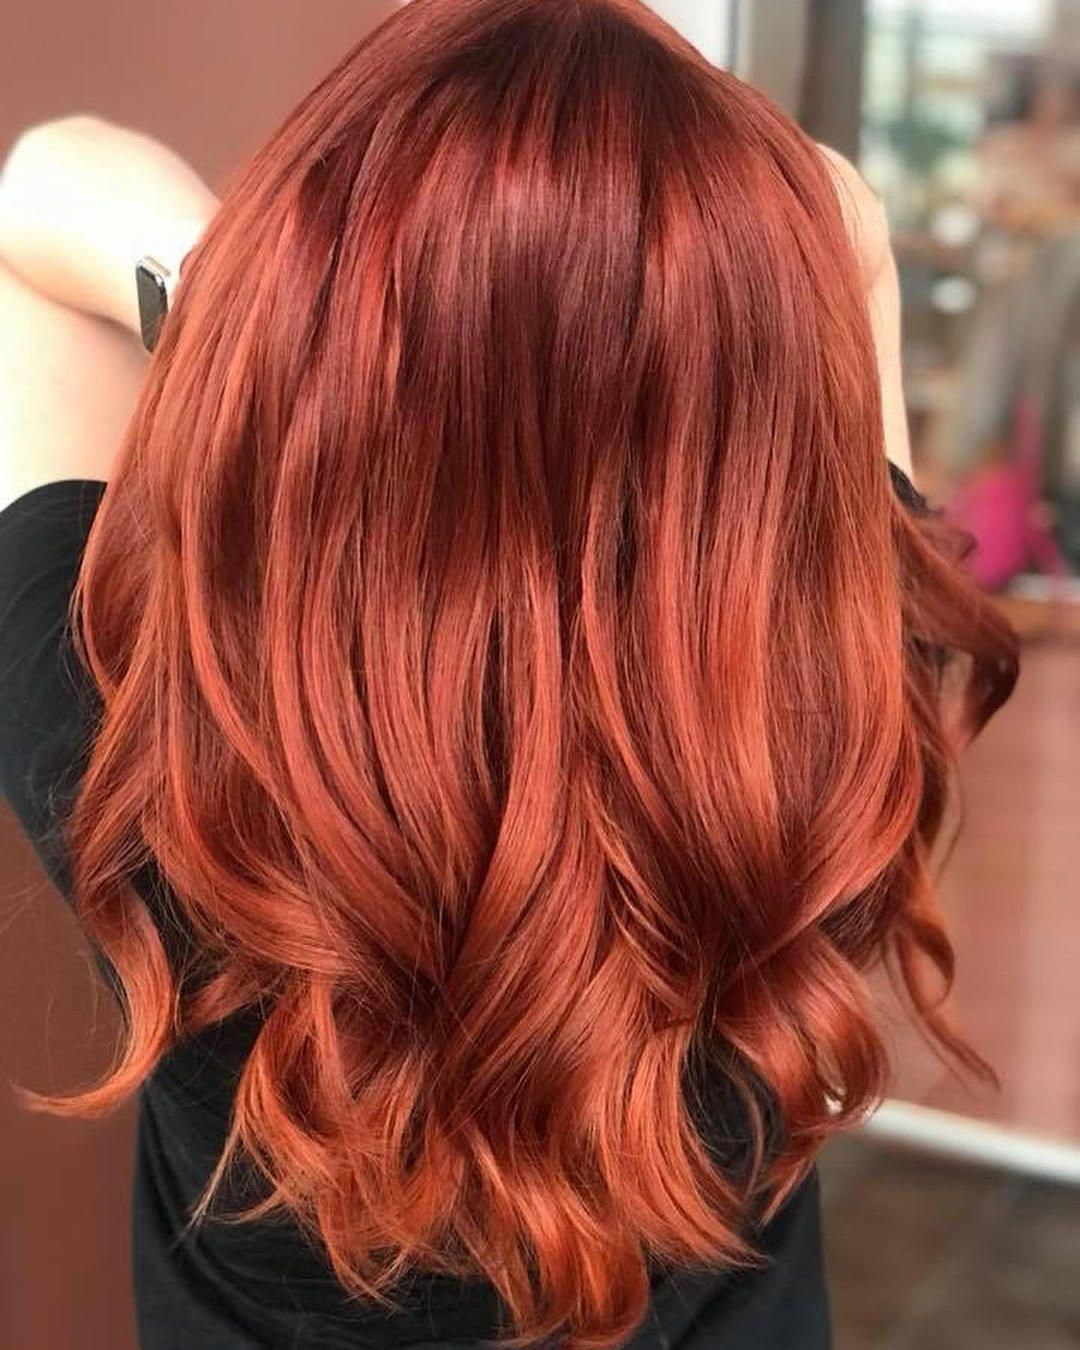 35 Lovely New Red Hair Color Ideas Red Hairstyles For 2019 Hairstyles Beautifulredhair Hair Styles Short Red Hair Red Hair Color